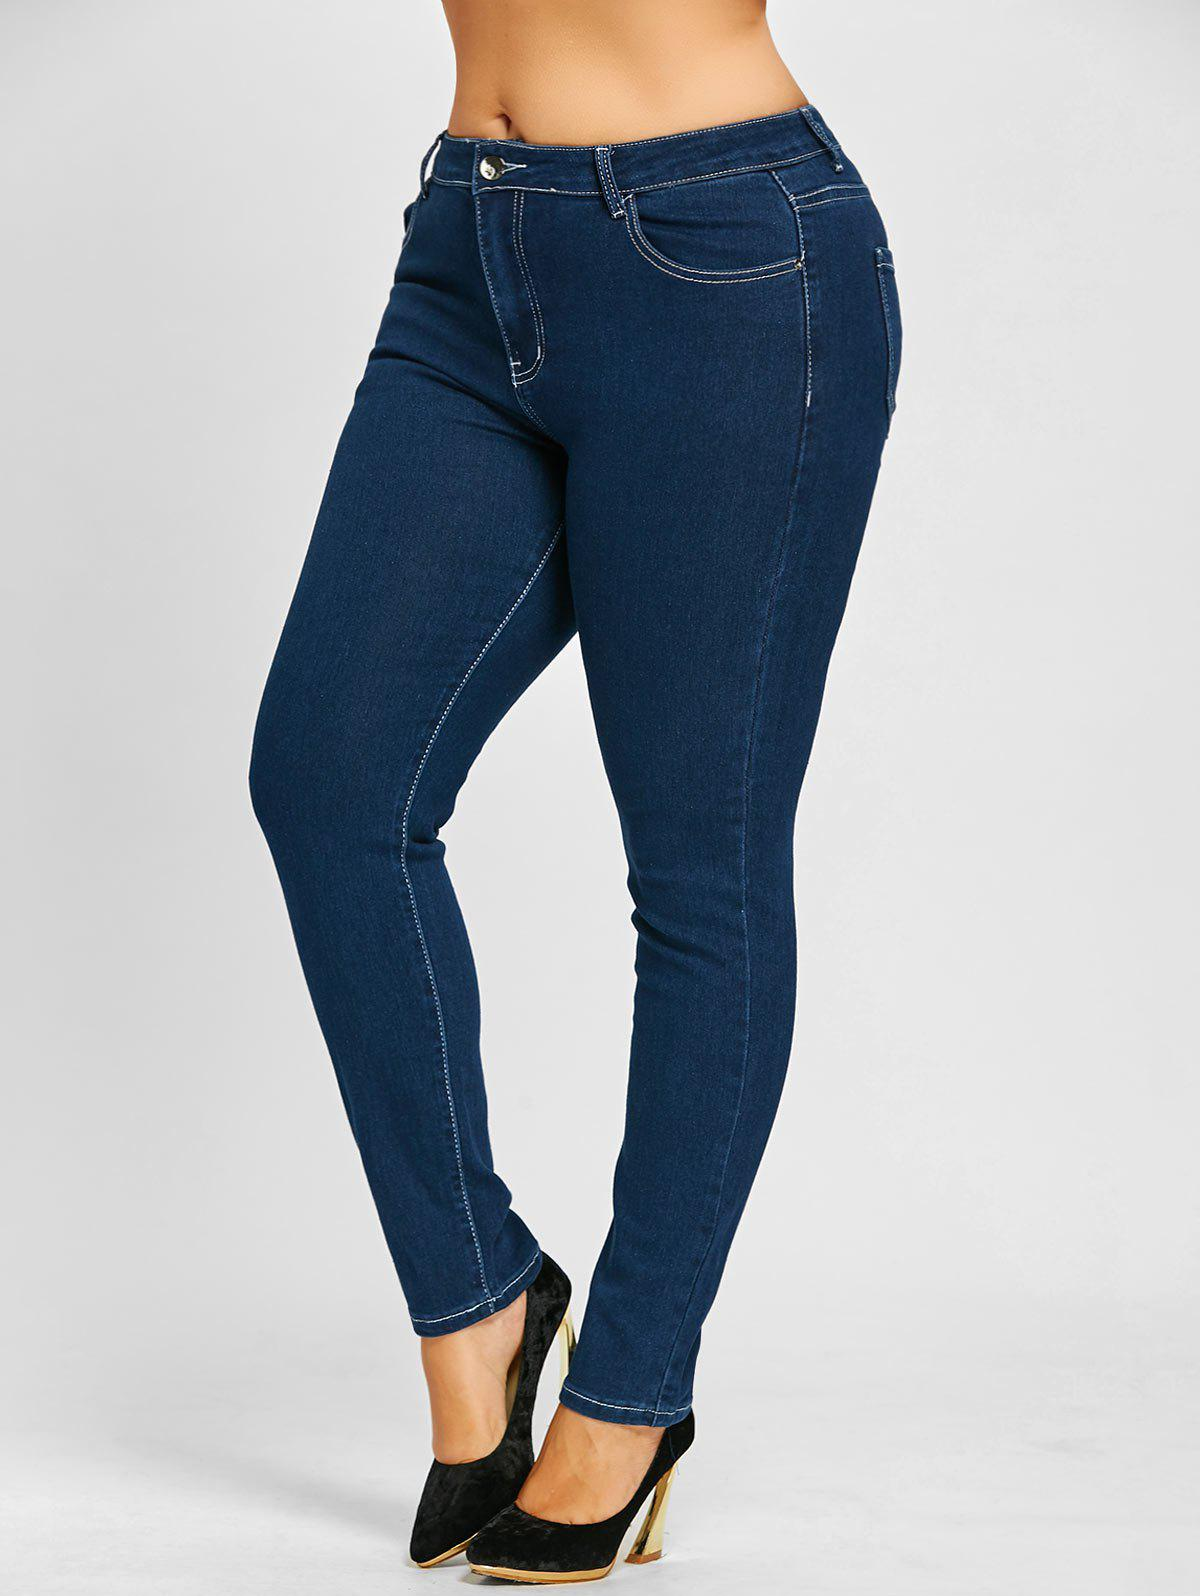 Plus Size Zip Up Stretch High Rise Jeans - BLUE XL